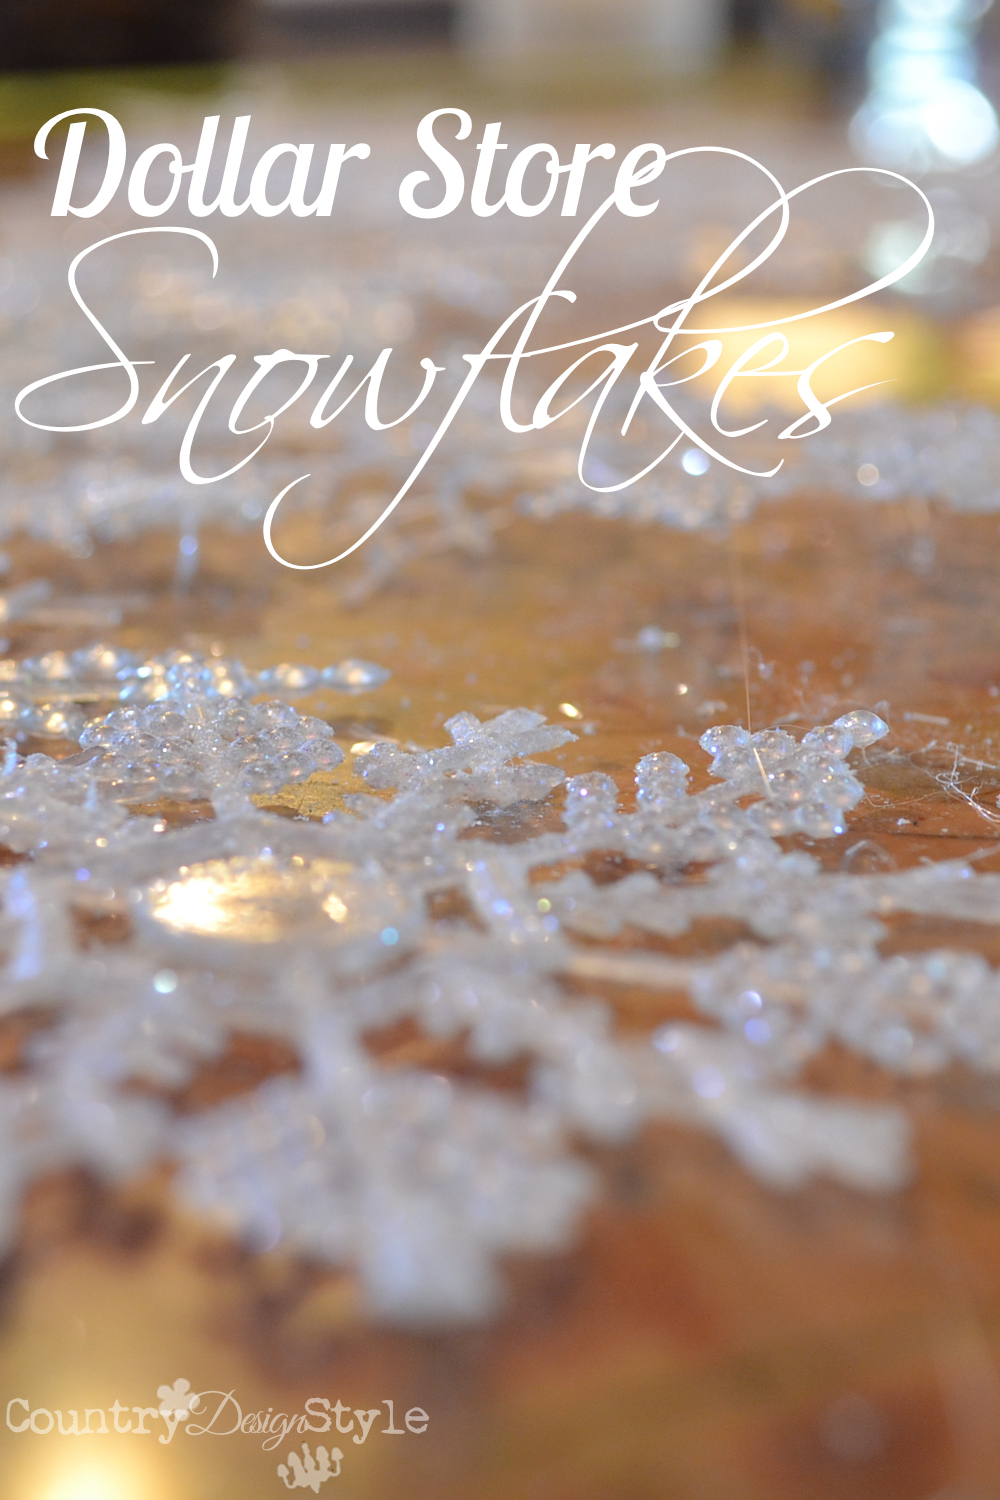 dollar-store-snowflakes-country-design-style-pn